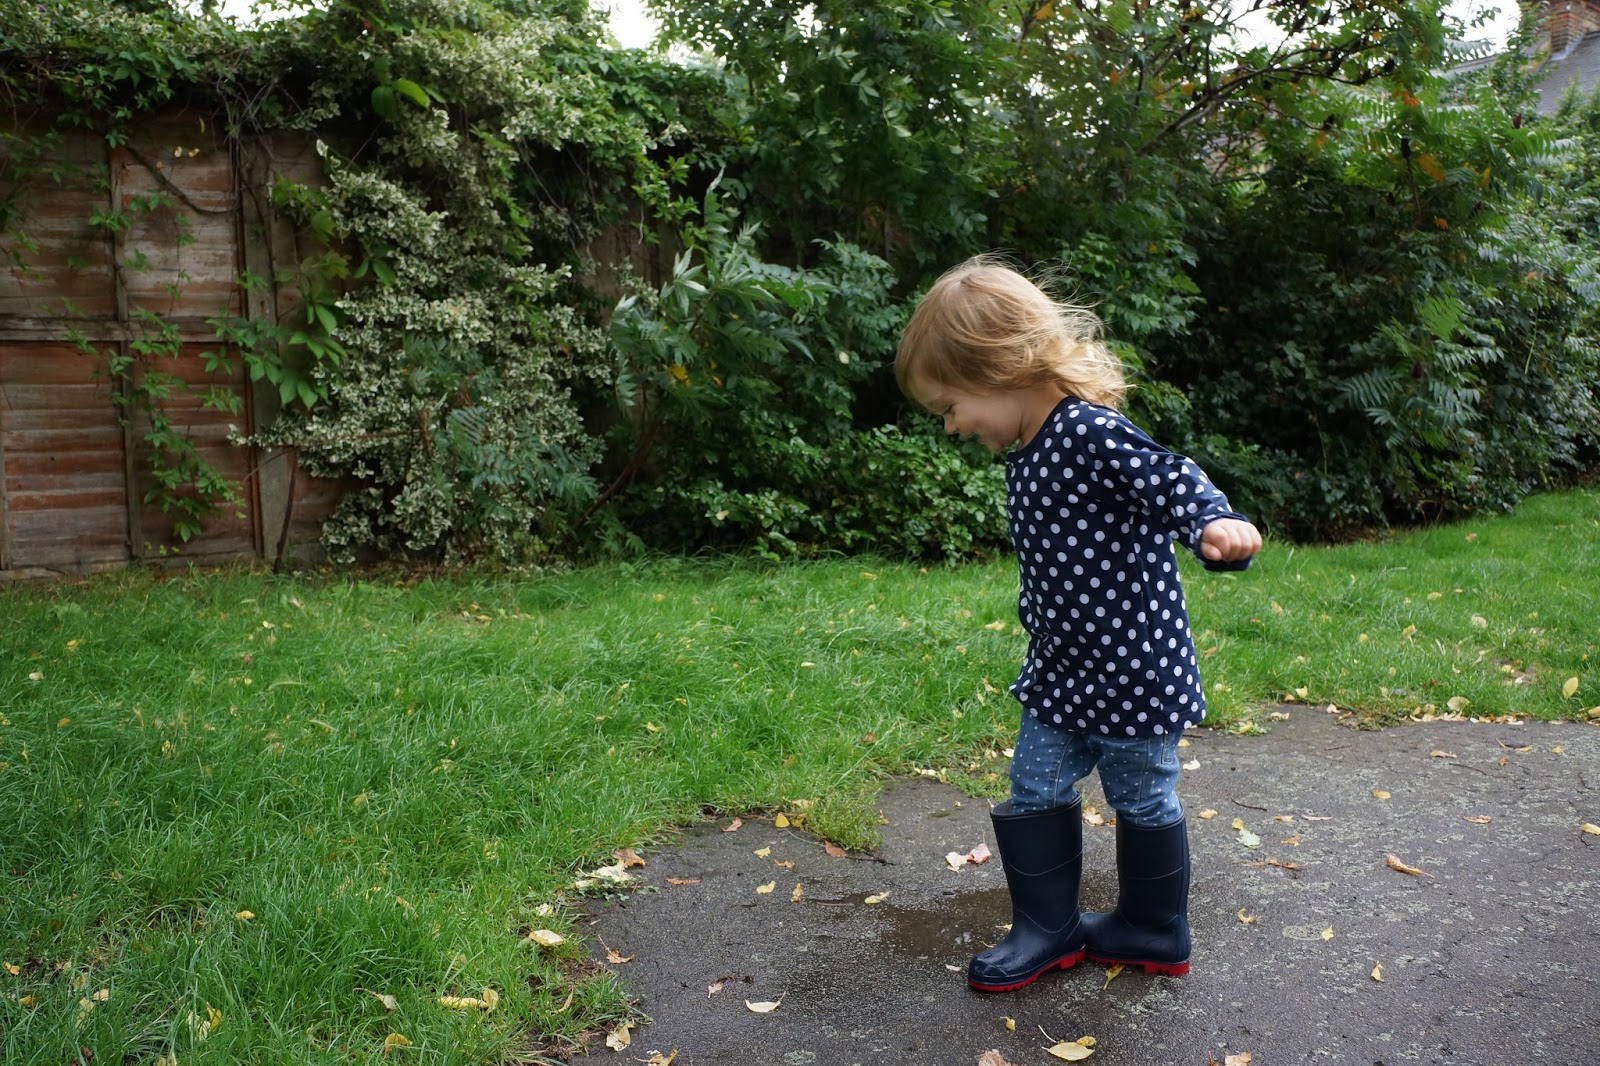 puddle jumping in muddy puddless classic wellies navy